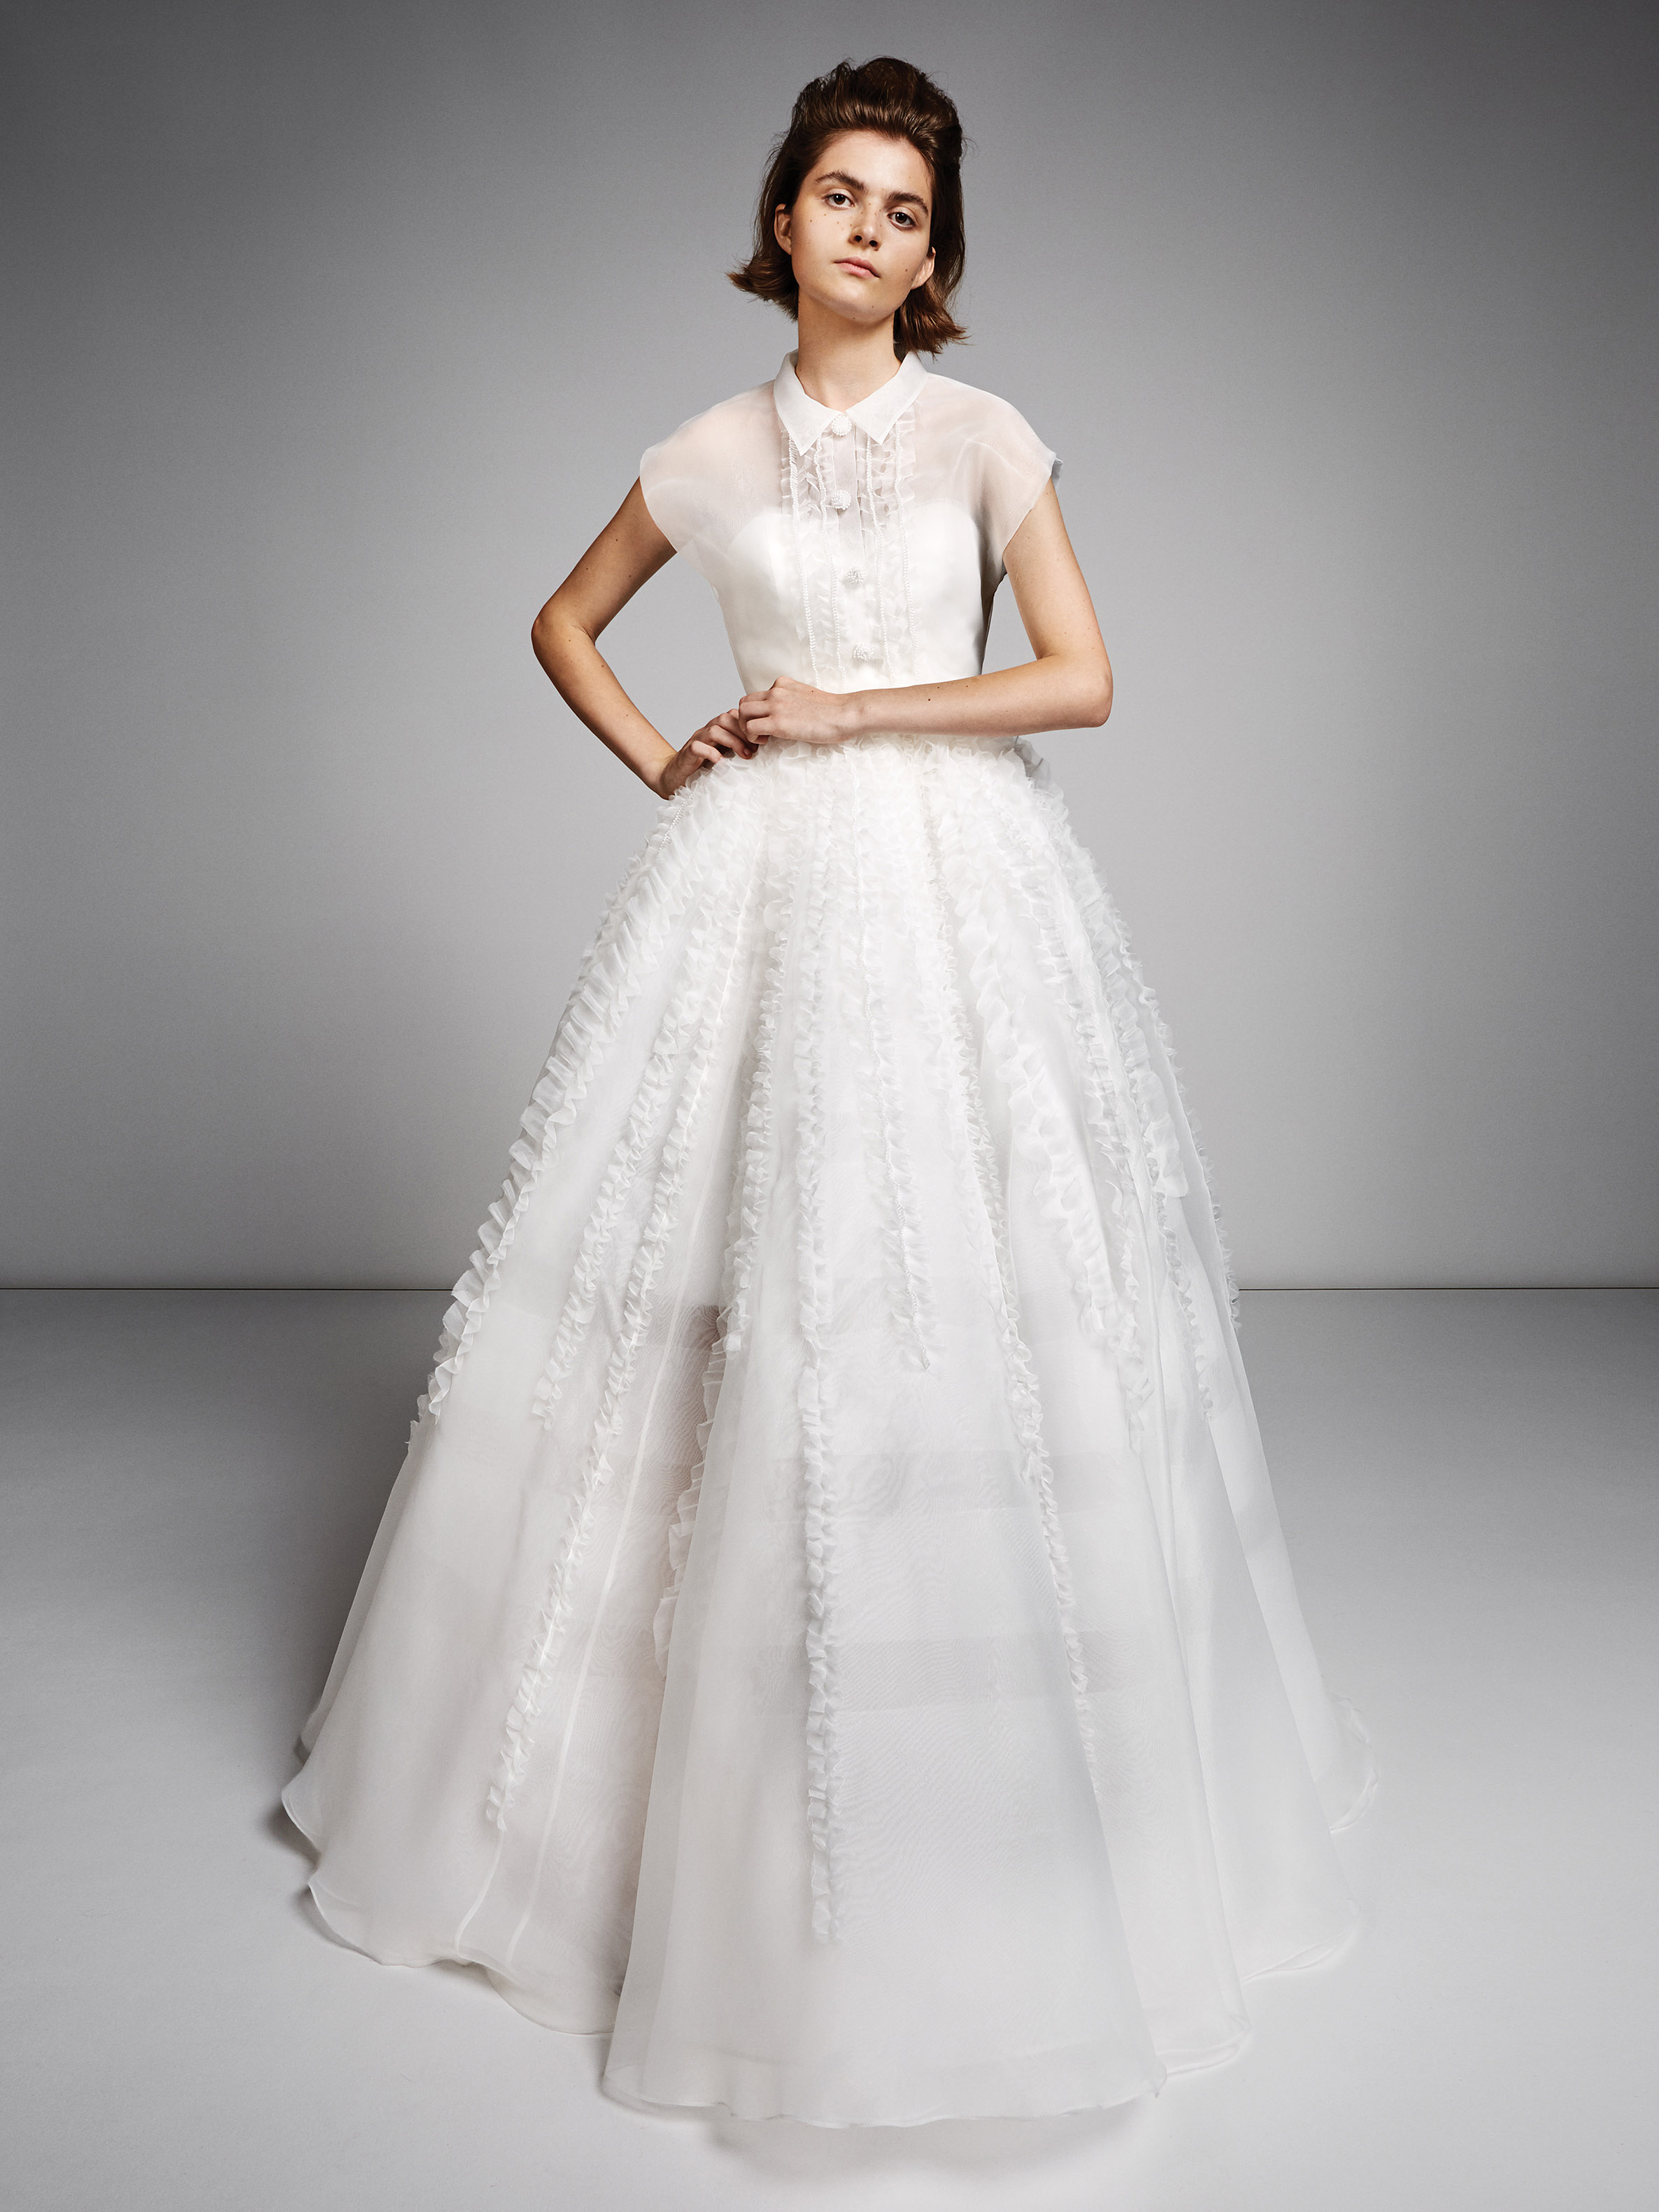 Viktor&Rolf Mariage Fall 2019 Wedding Dress Collection